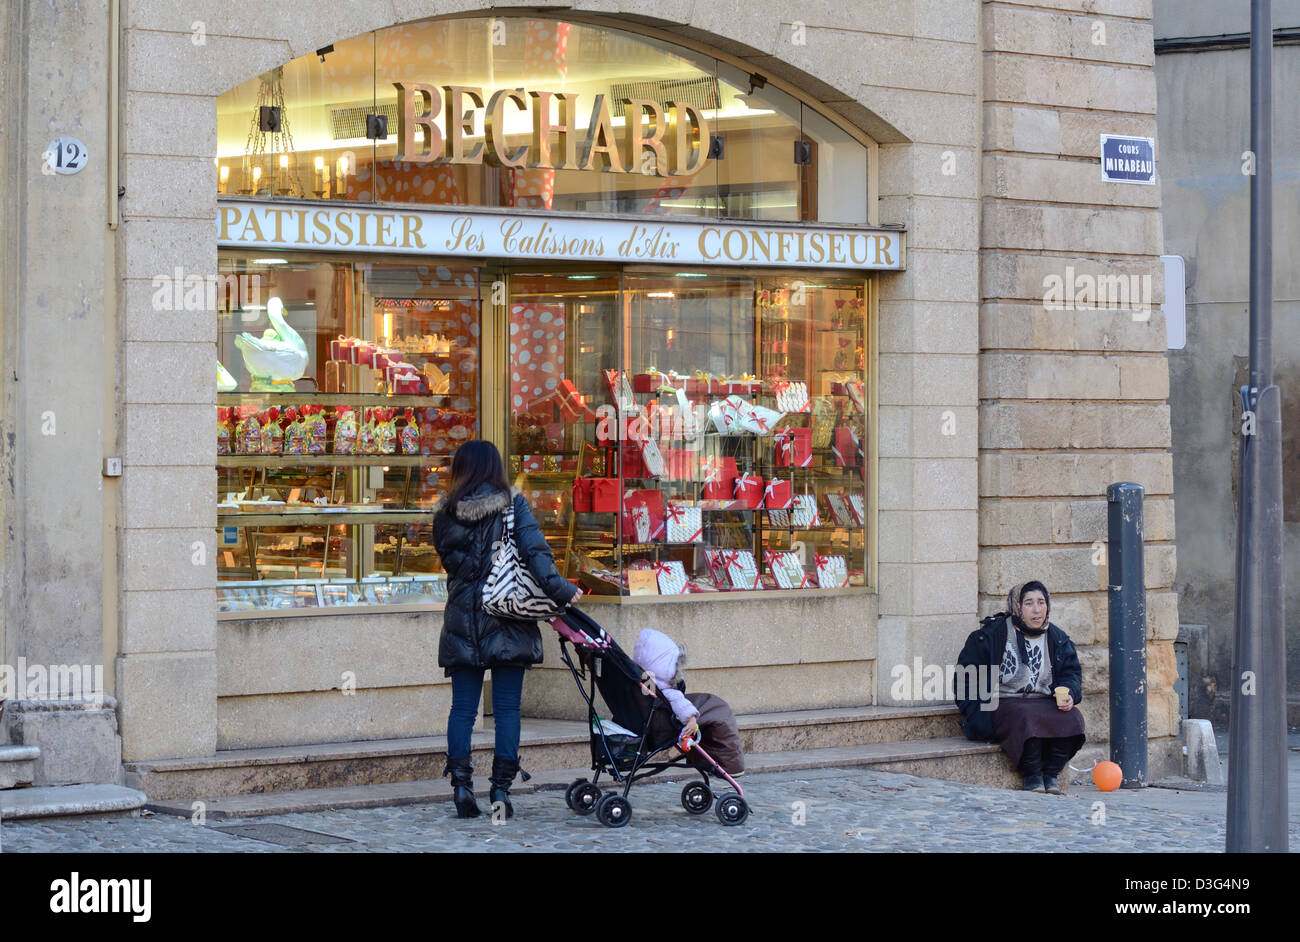 Romanian Woman Gypsy Beggar Outside Patisserie Cours Mirabeau Aix-en-Provence Provence France - Stock Image